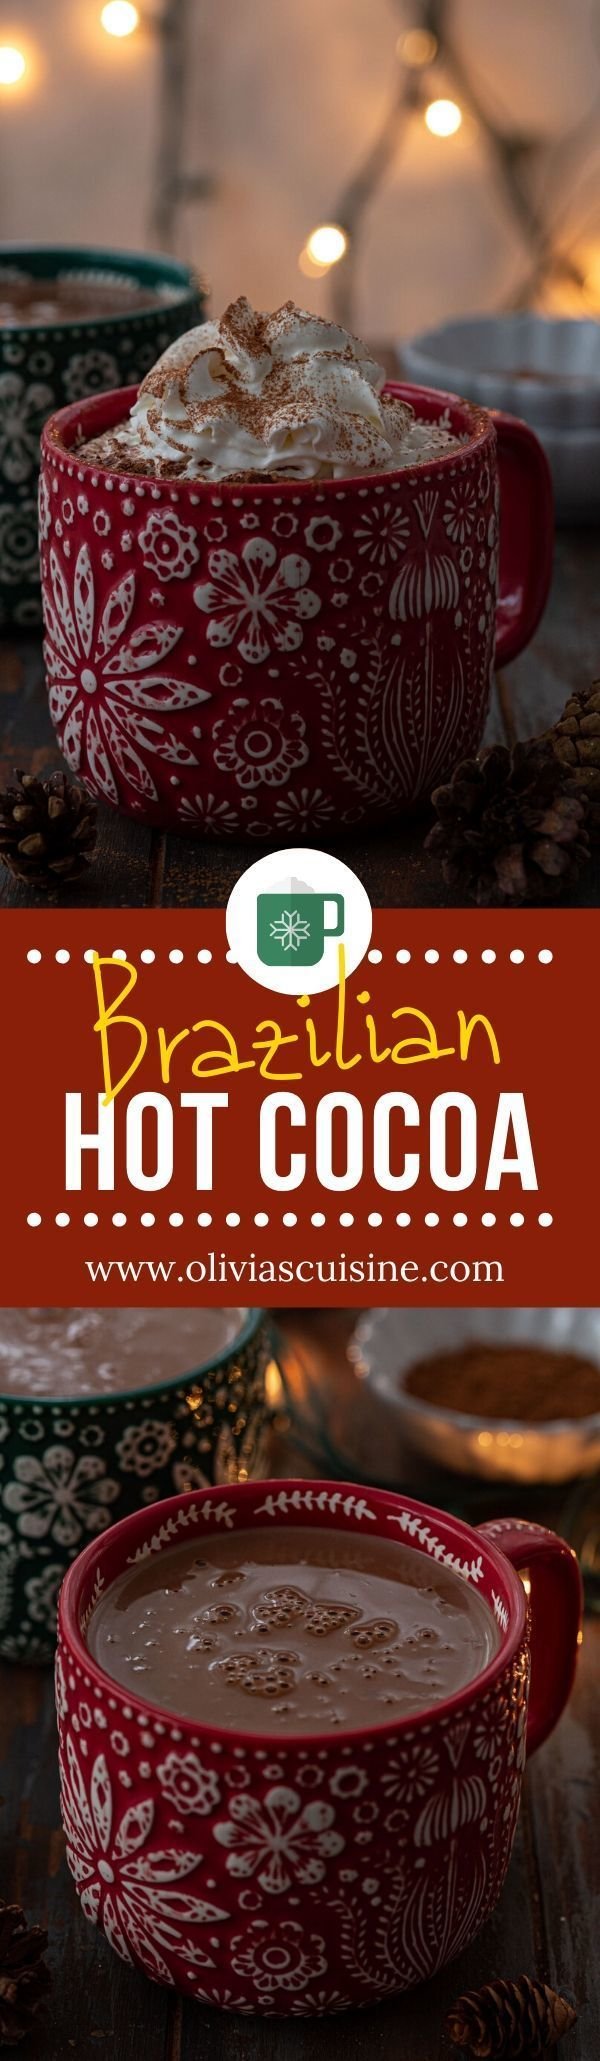 Brazilian Hot Cocoa | www.oliviascuisine.com | Brazilian Hot Cocoa is thick, silky and unbelievably creamy! A decadent treat to warm you up and sooth your soul. You'll want to sip this all winter long! (Follow @oliviascuisine for more delicious recipes!) #hotcocoa #hotchocolate #brazilianfood #comfortfood